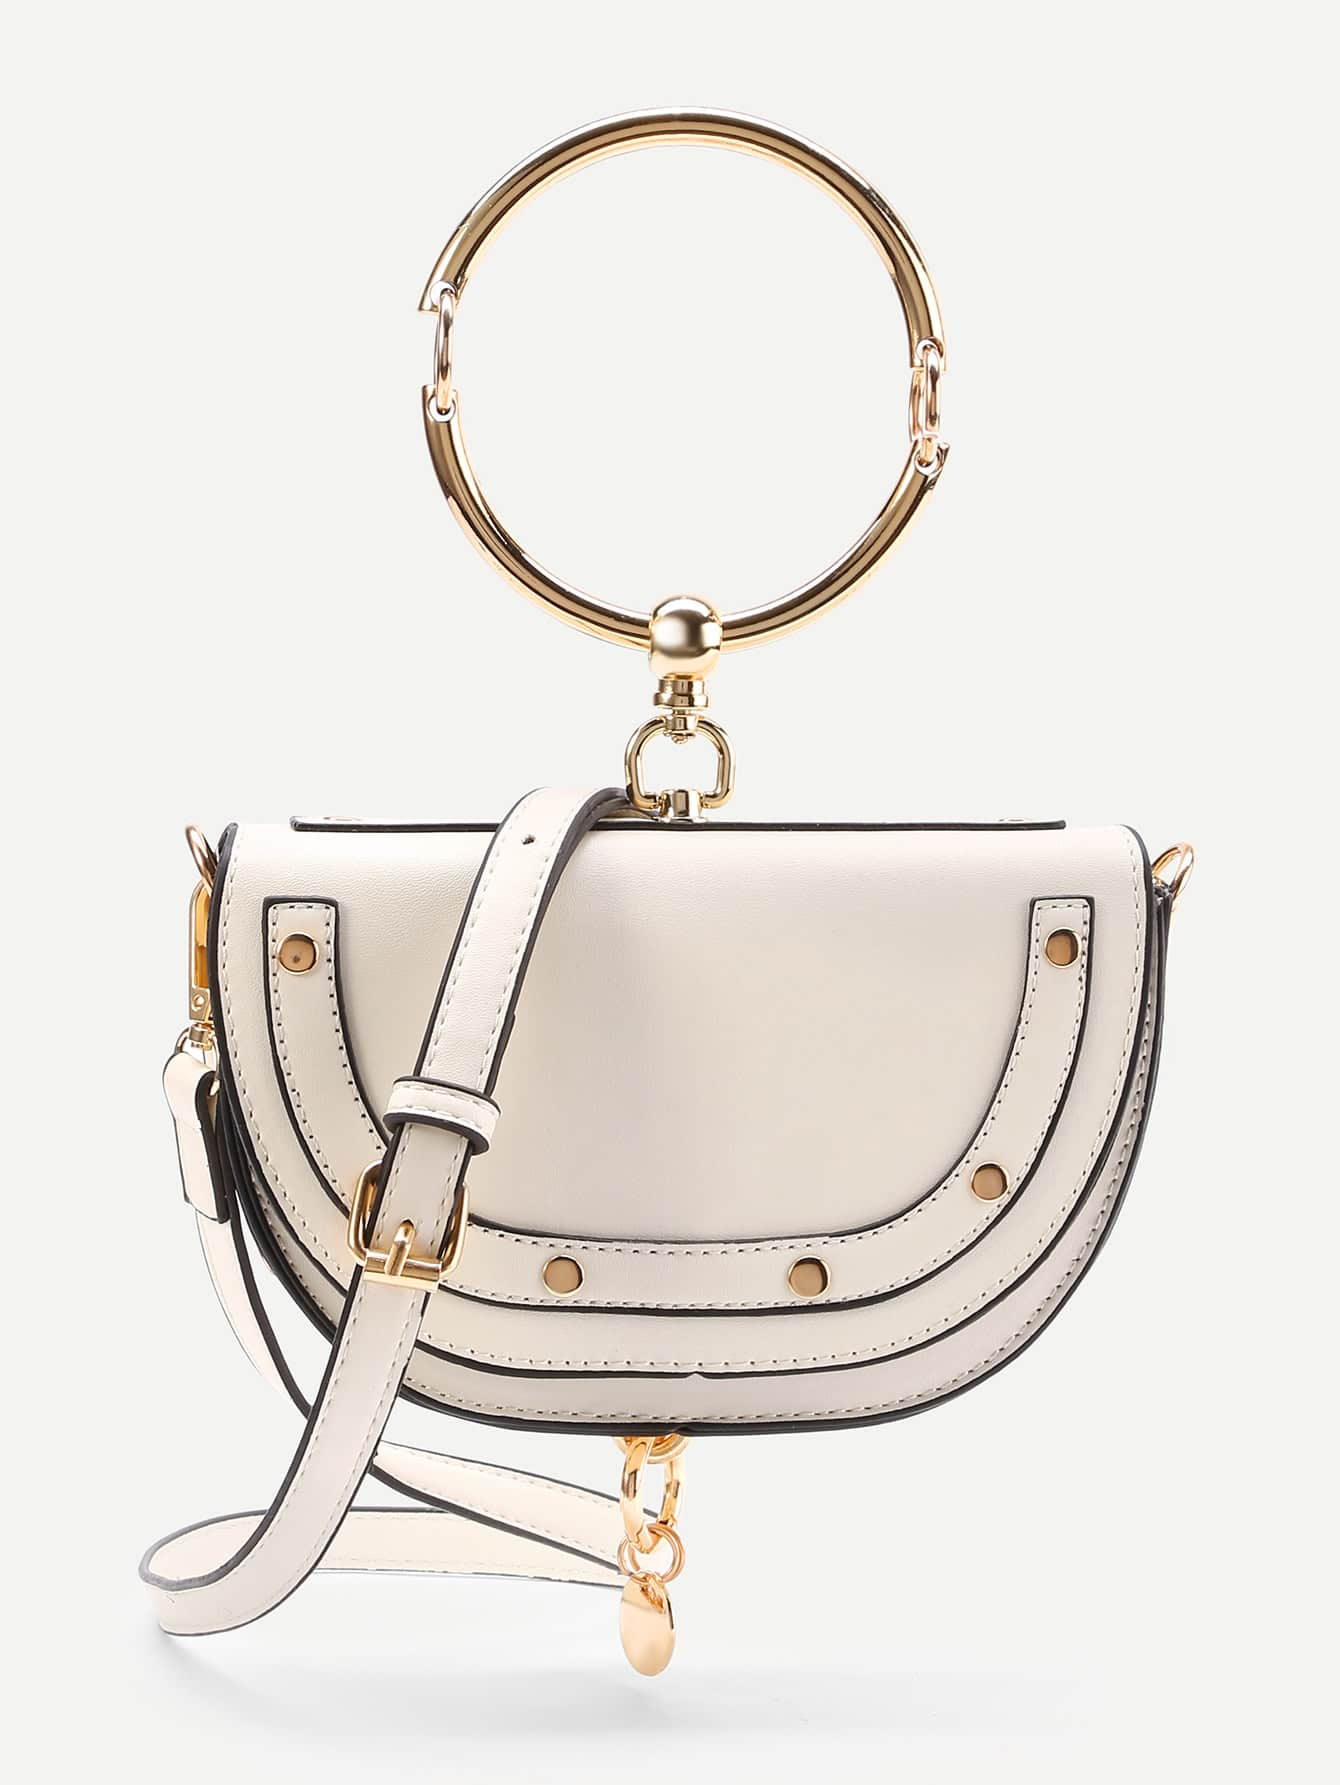 http://us.shein.com/Half-Moon-Shaped-Crossbody-Bag-With-Ring-Handle-p-359183-cat-1764.html?aff_id=4021